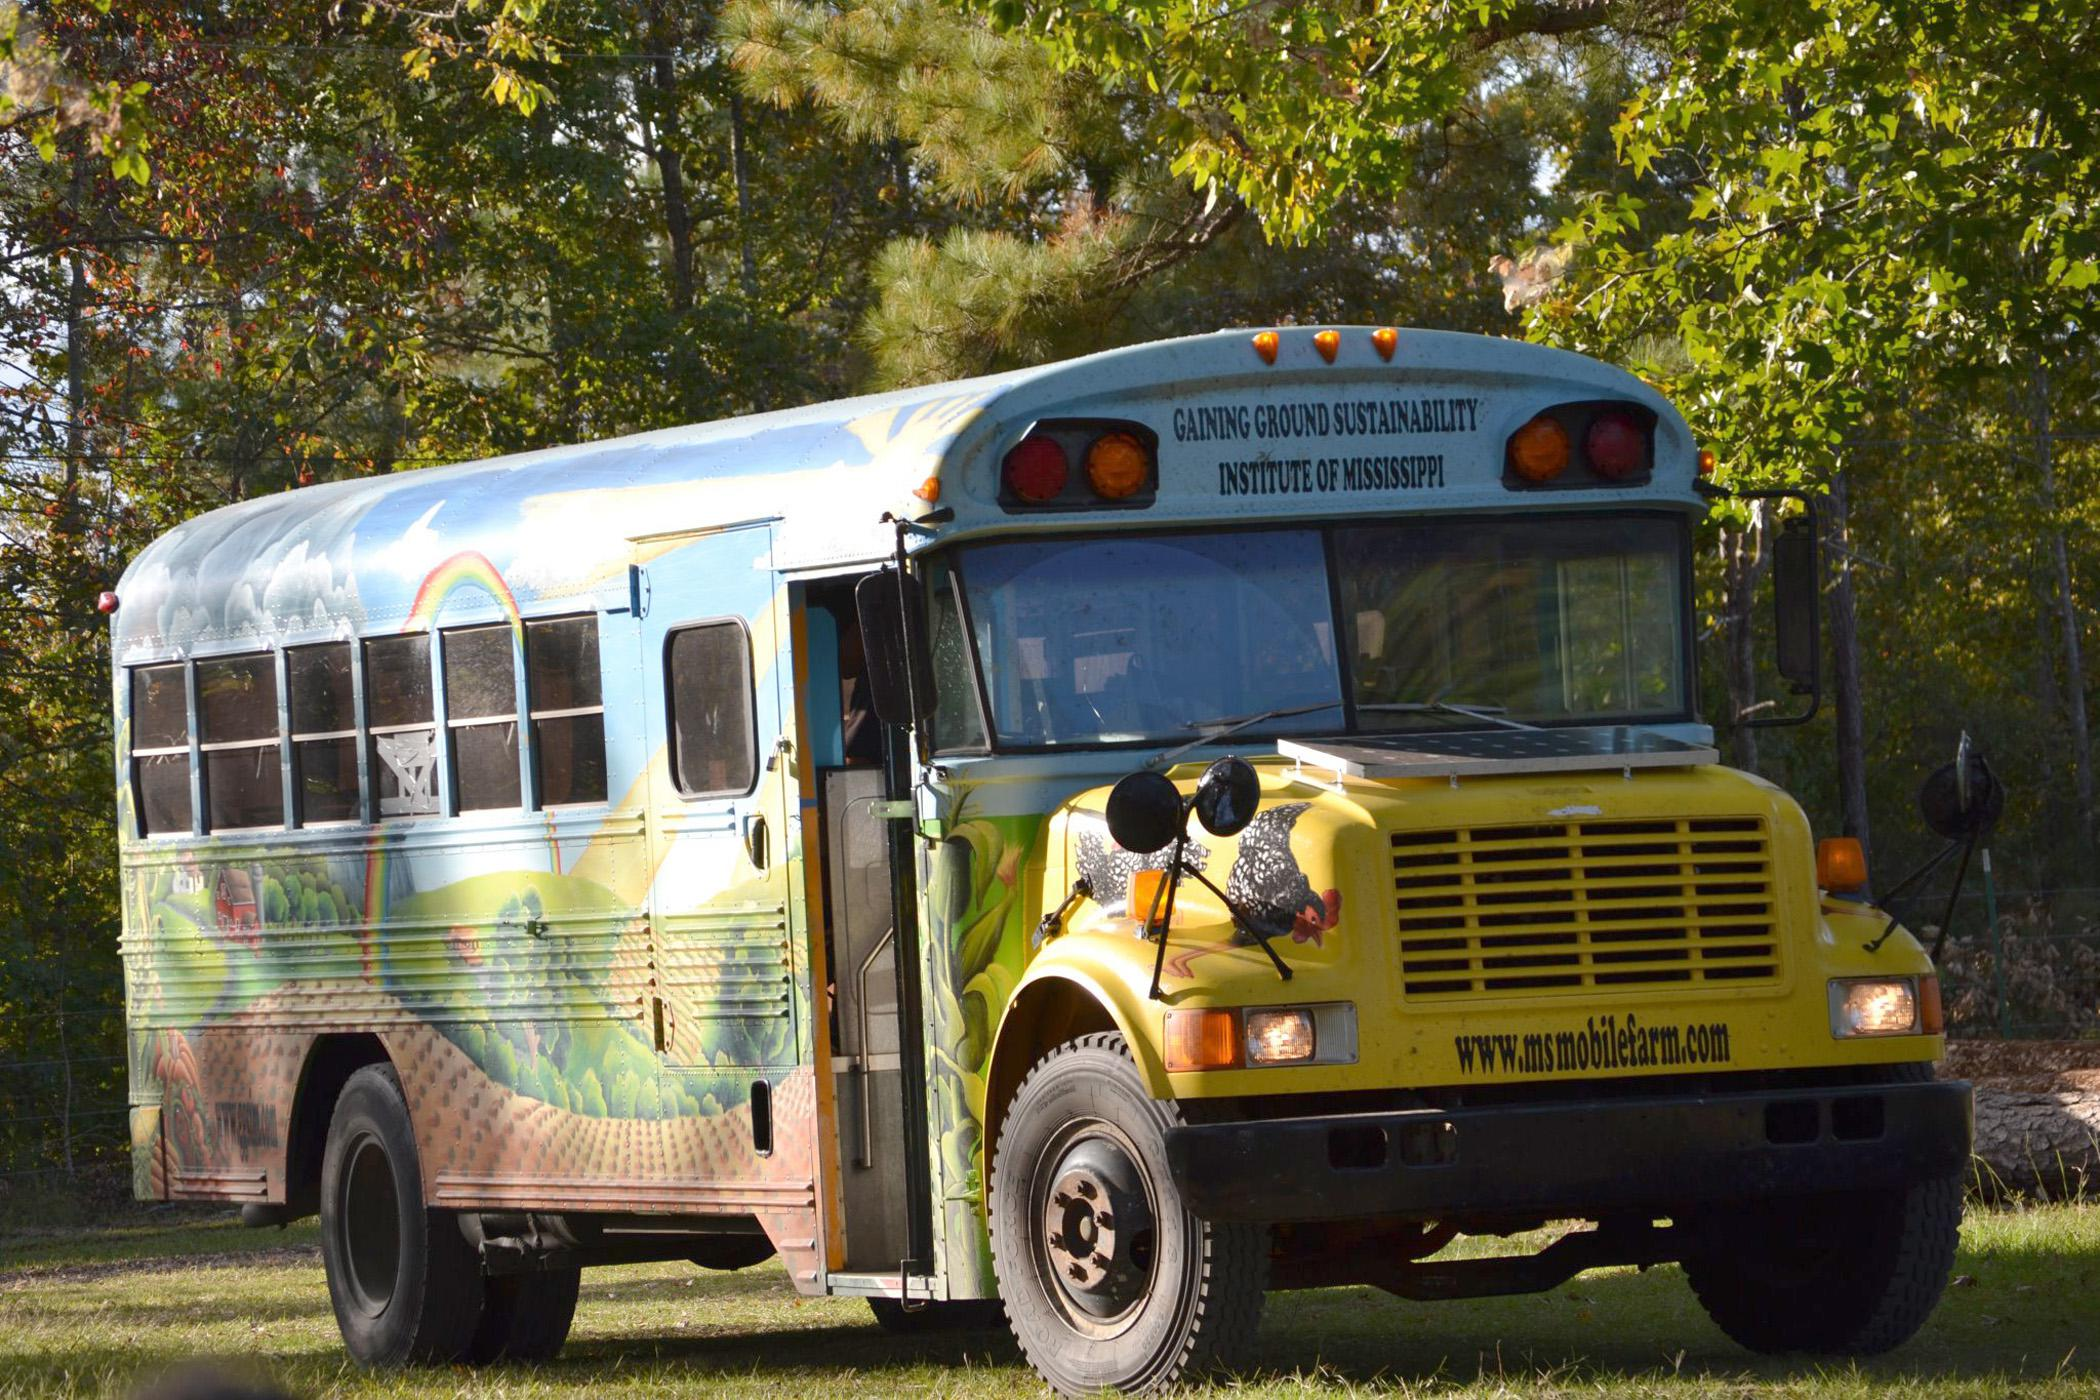 The Gaining Ground Sustainability Institute of Mississippi uses a mobile farm to take examples of renewable energy and food production strategies to schools around the state. (Submitted Photo)""